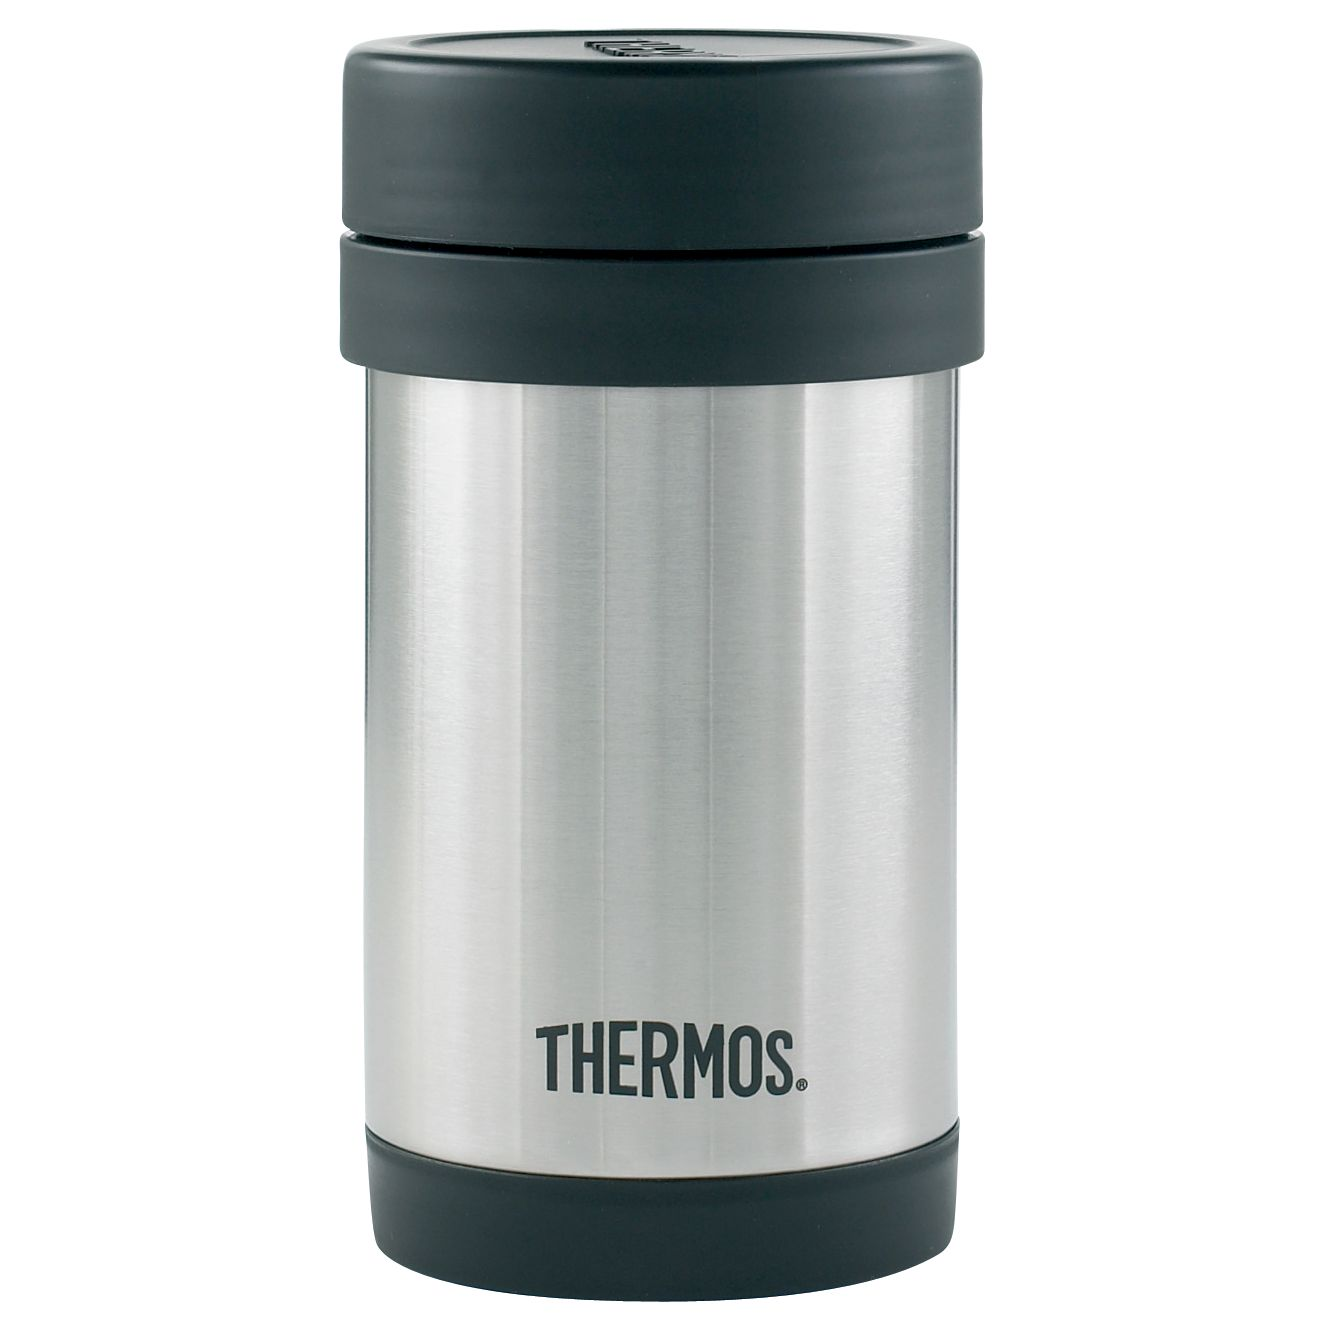 Thermos Everyday Stainless Steel Food Flask, 0.5L